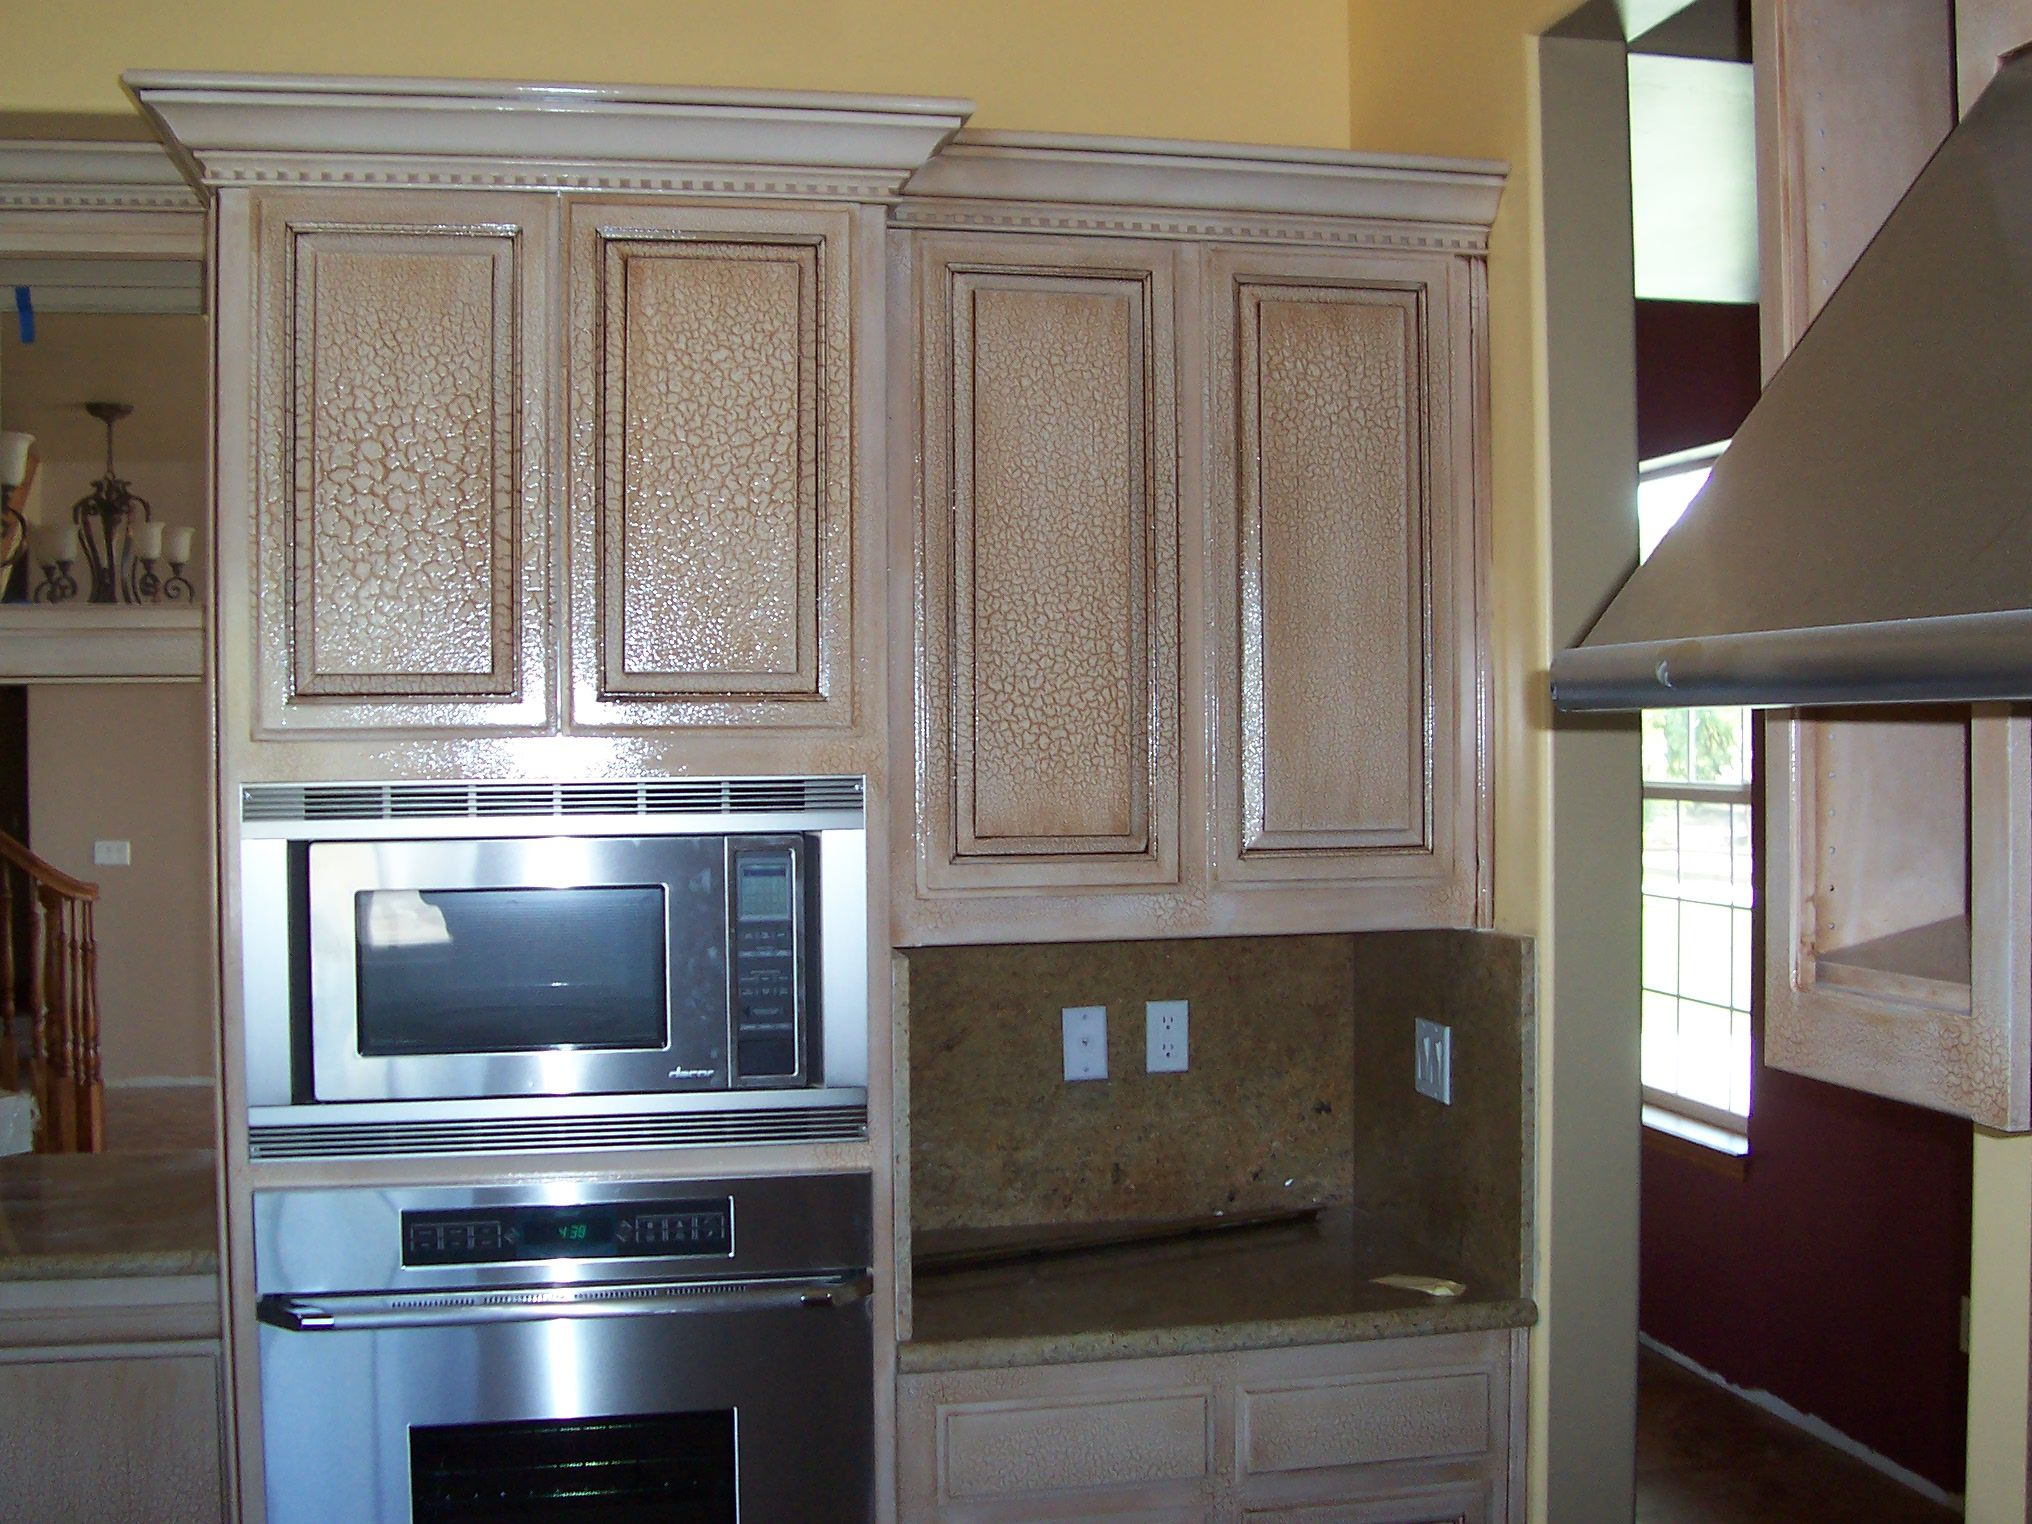 Crackle finish on kitchen cabinets antique paint design for Antiquing painted kitchen cabinets